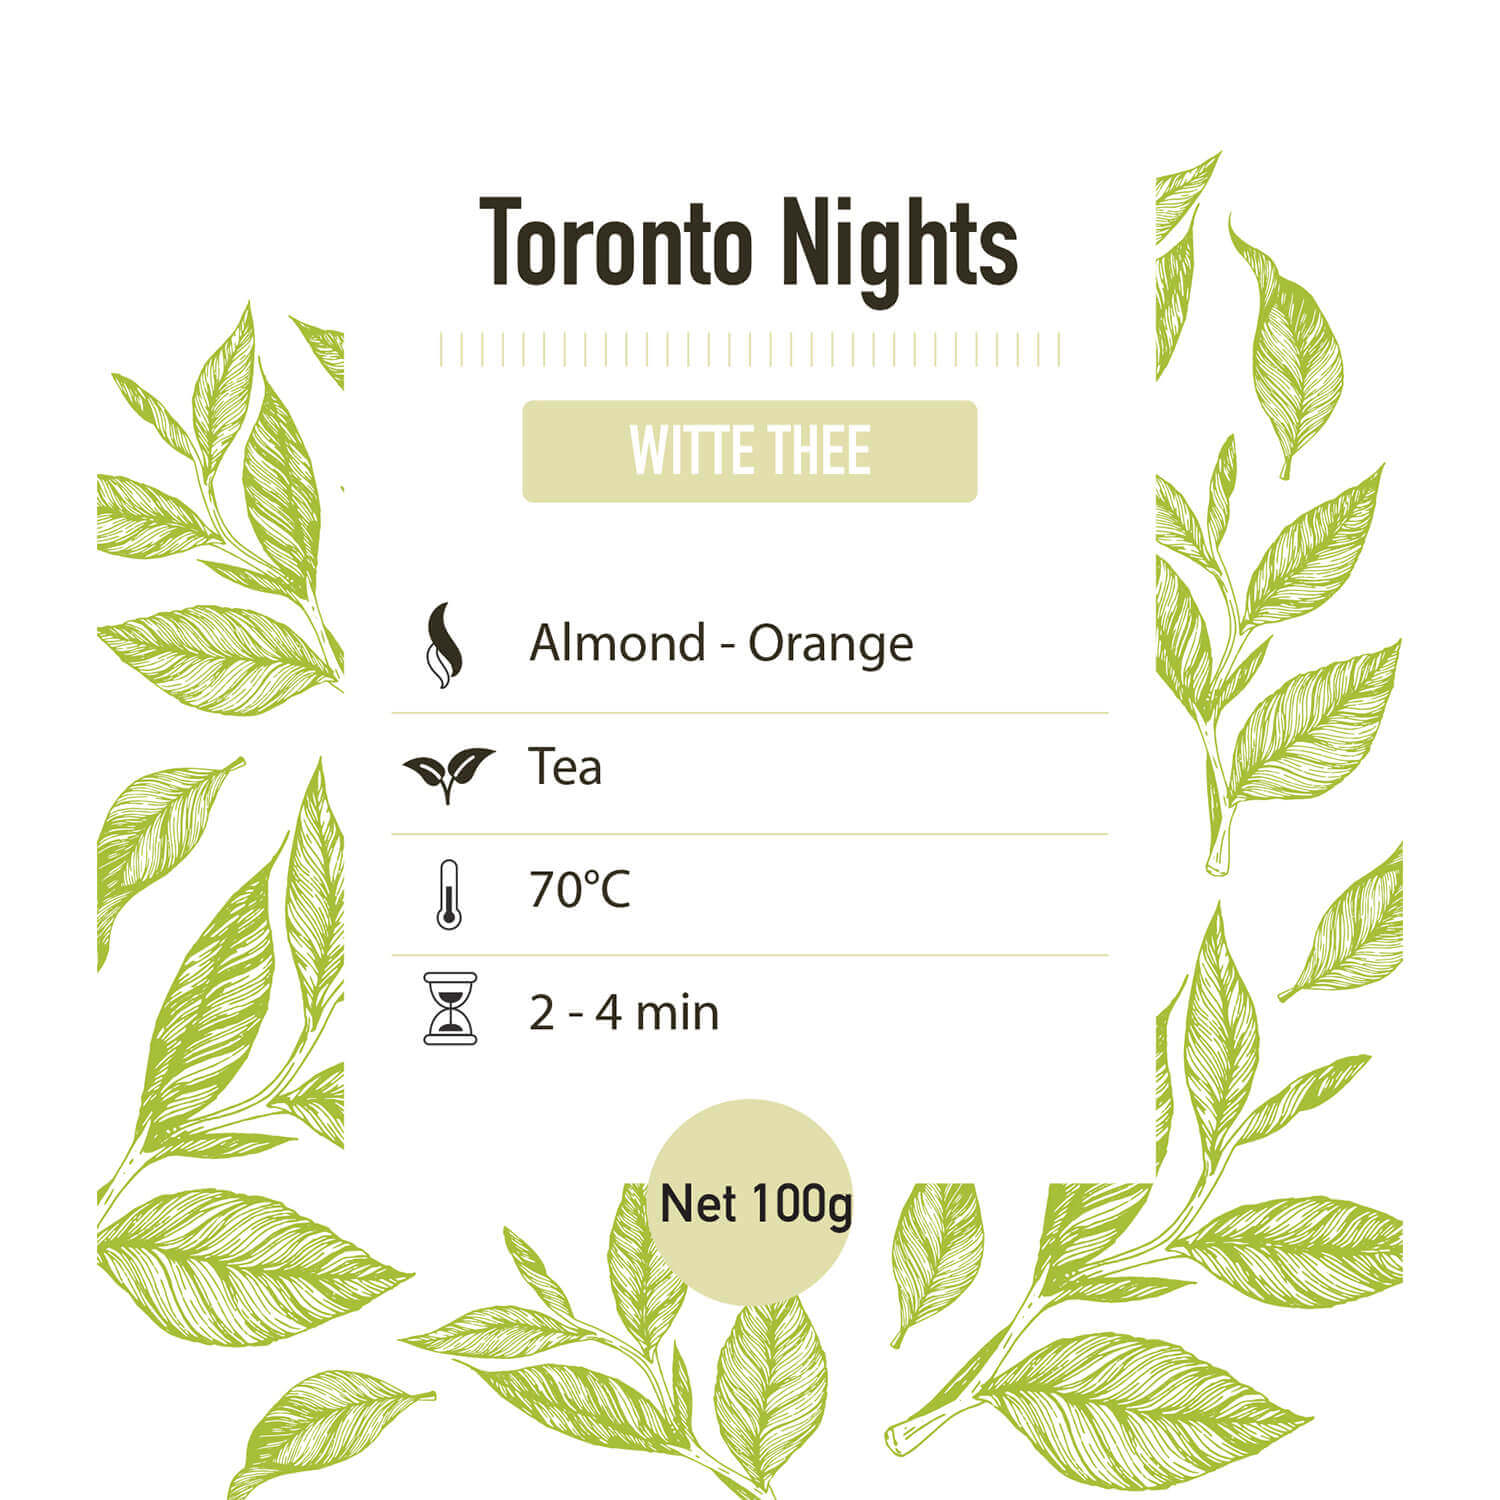 Witte thee – Toronto Nights